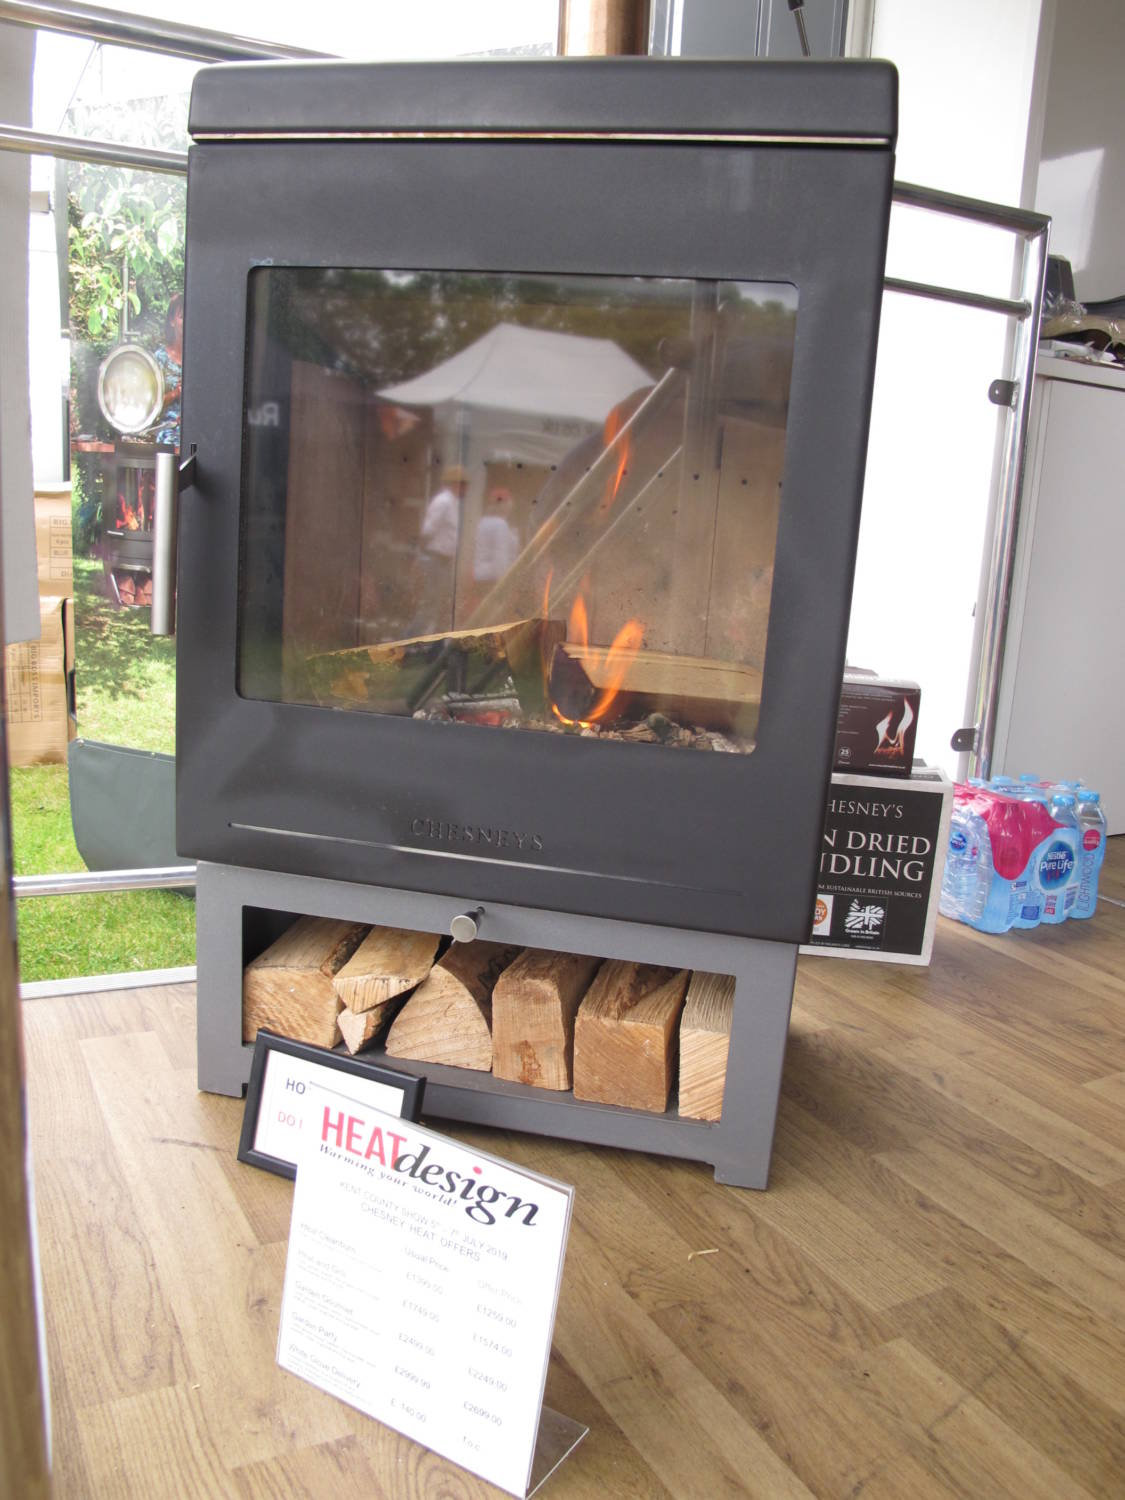 Heat Design at The Kent Show, with Oast House Media